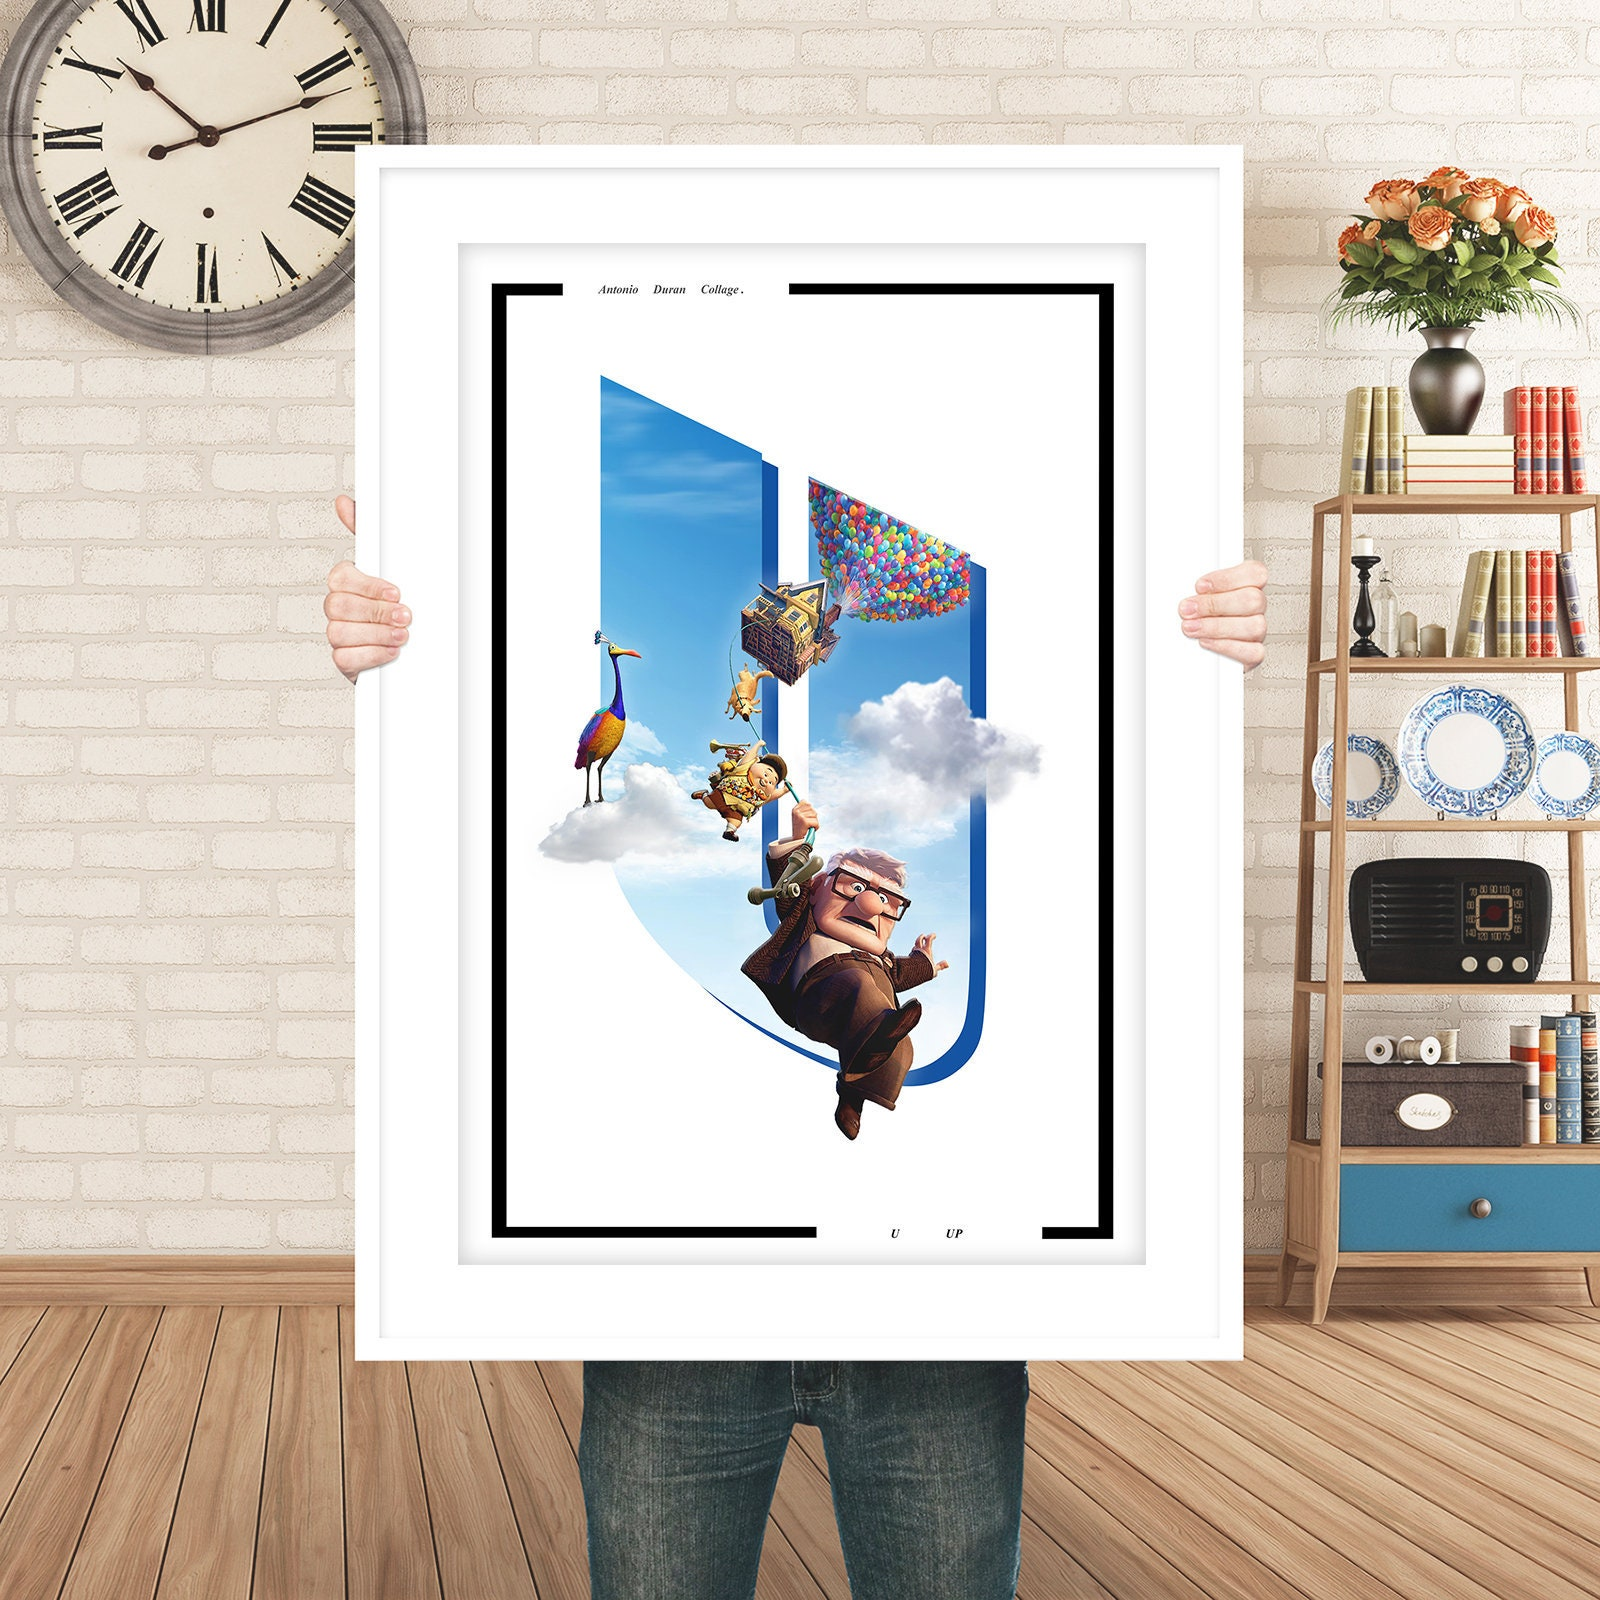 UP Disney Poster Print art, Disney Pixar movie poster film, Download  Alphabet Movies Series Make Your Name.